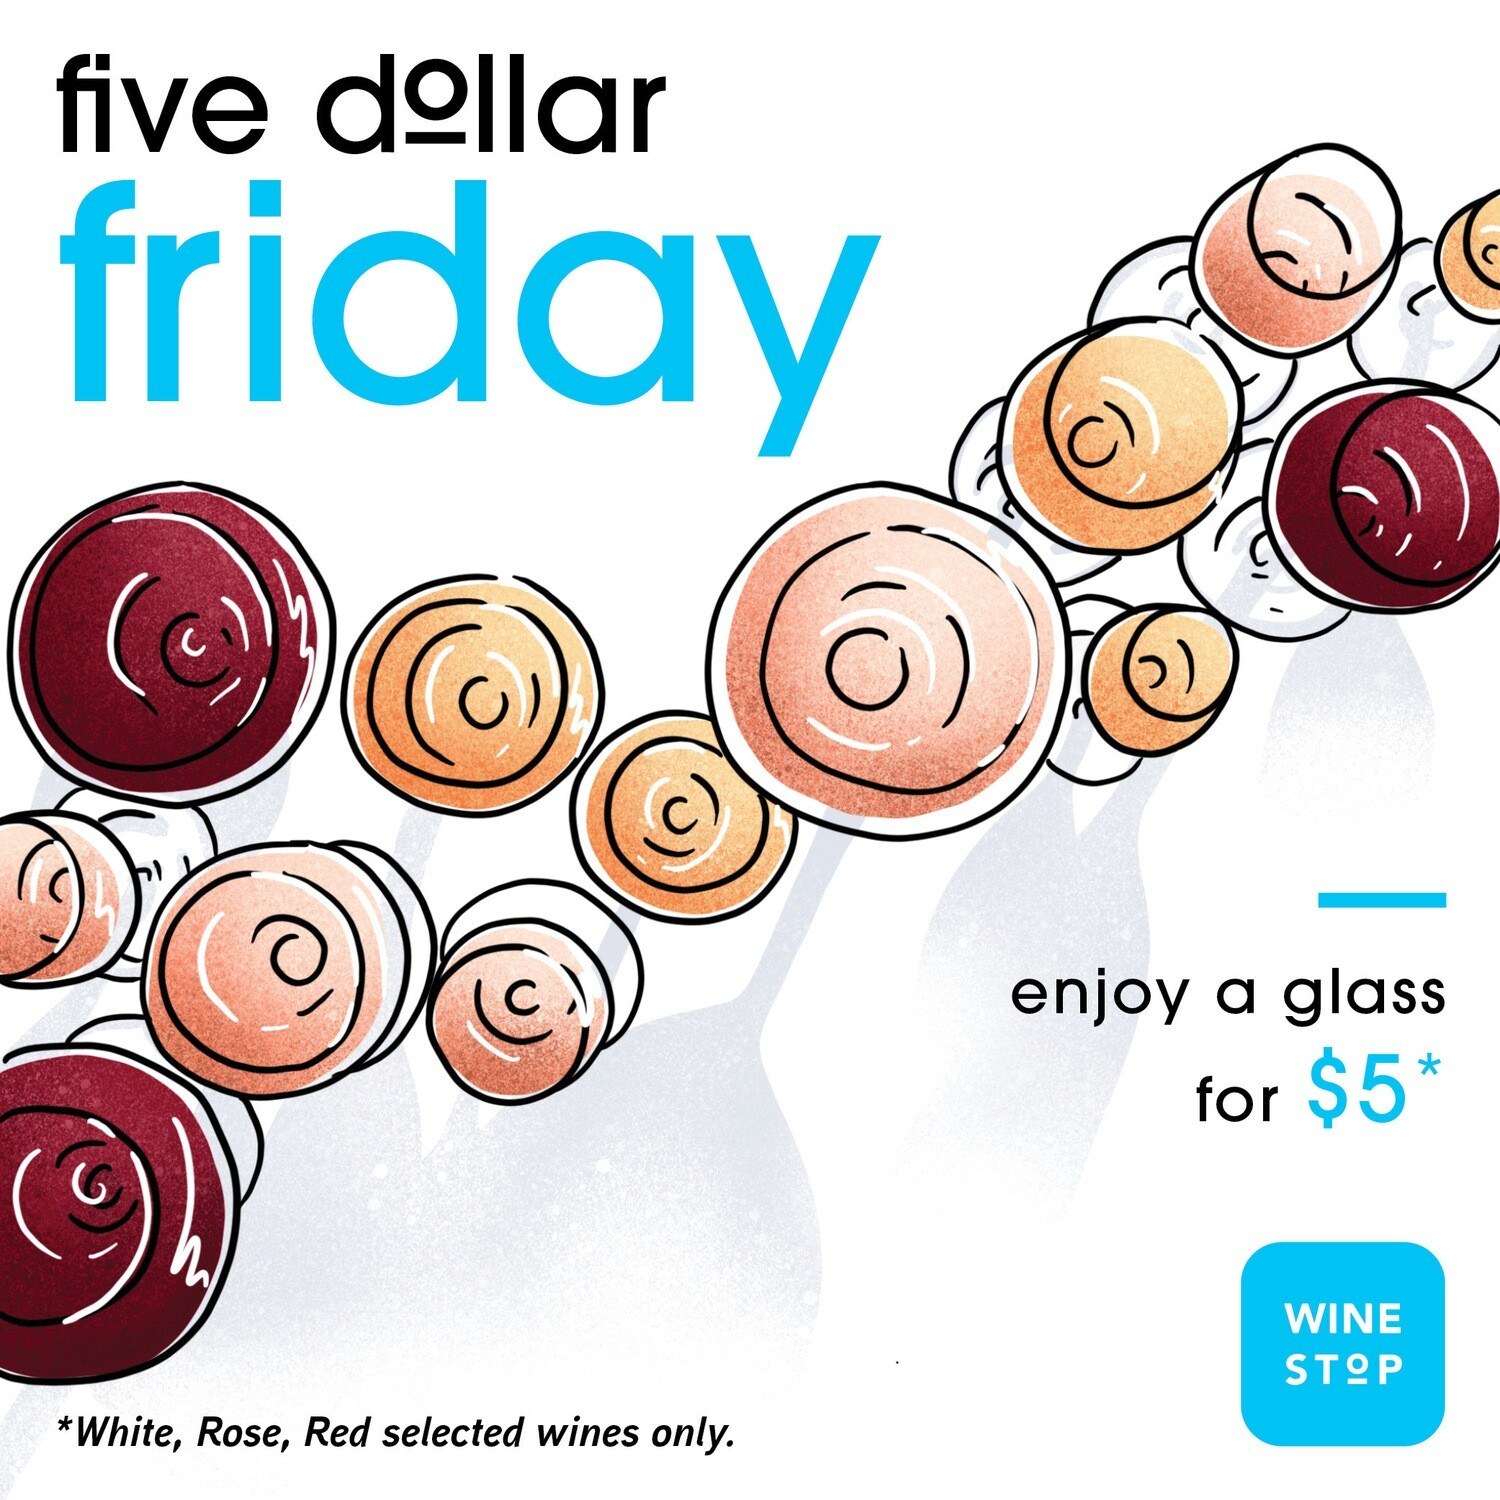 Every Friday: Five Dollar Friday